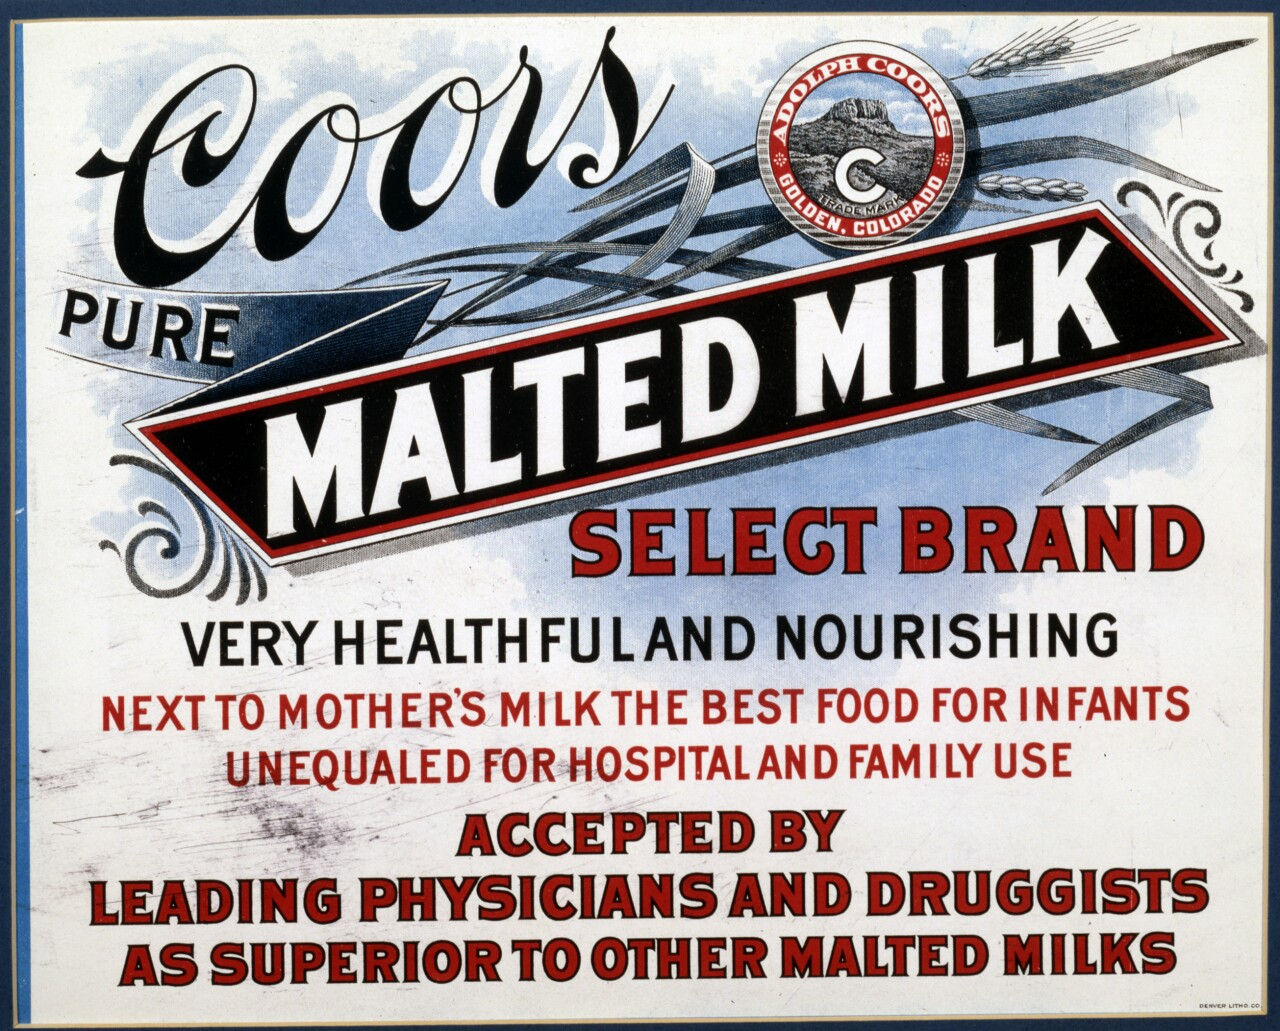 Coors malted milk ad